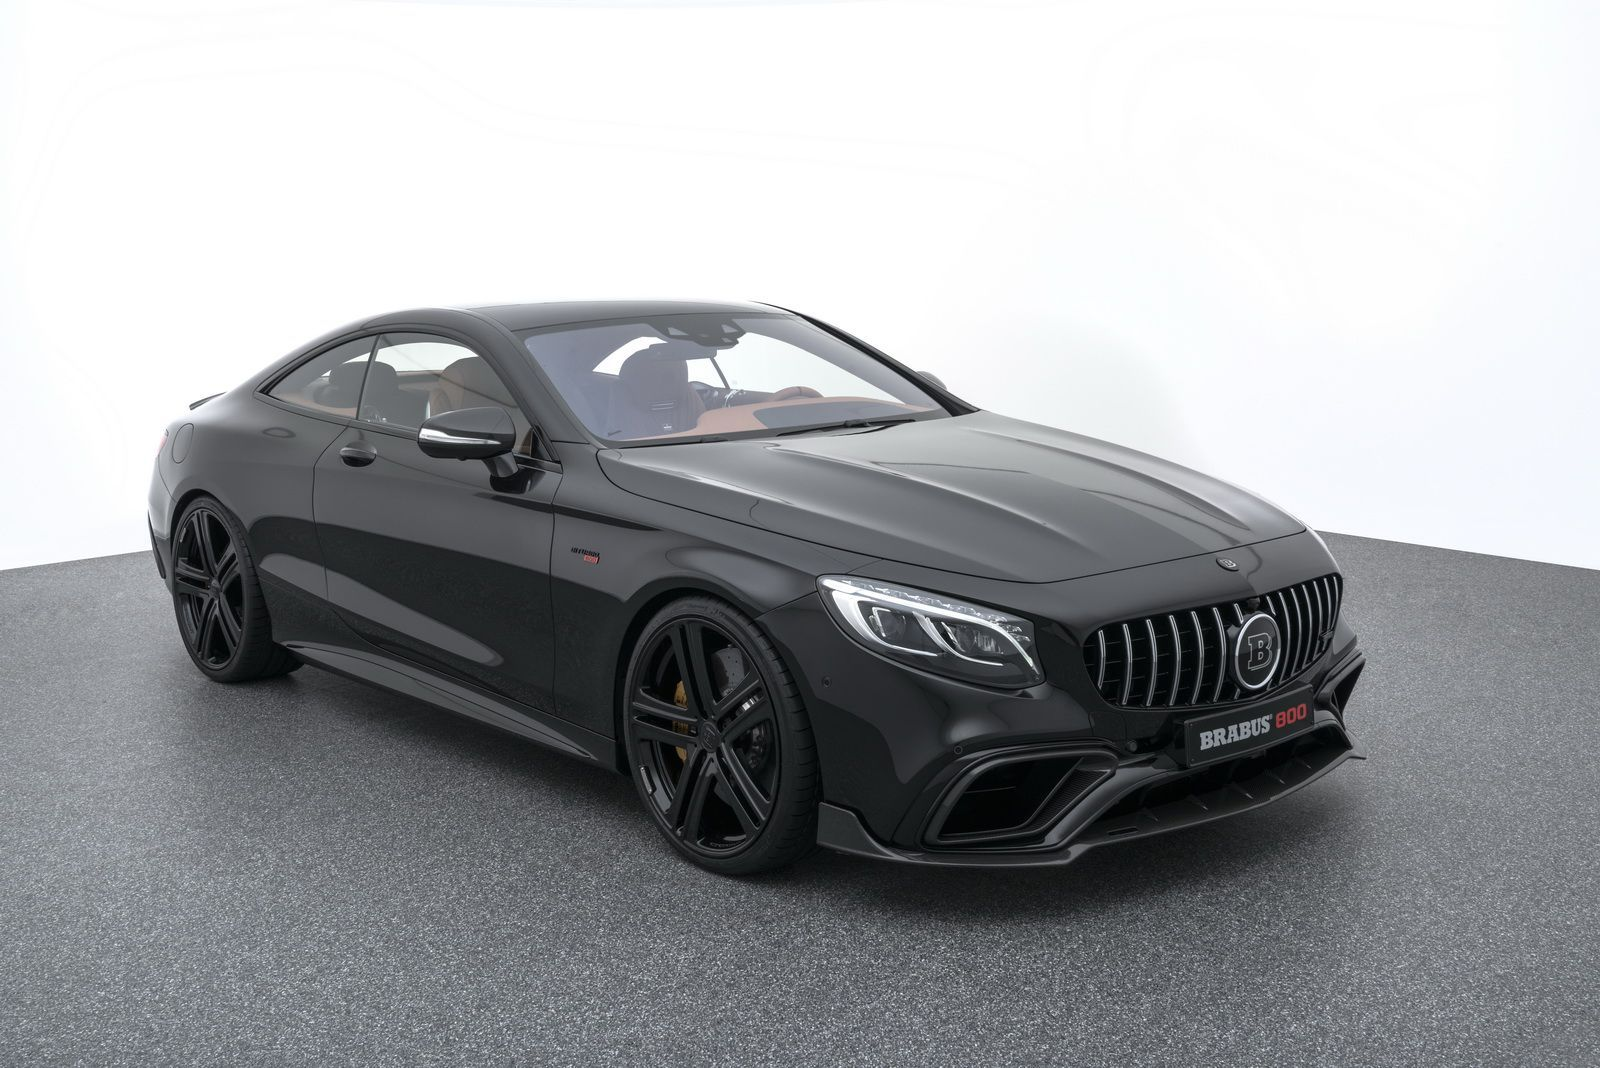 The Brabus 800 Takes The Mercedes Amg S63 To The Extreme With